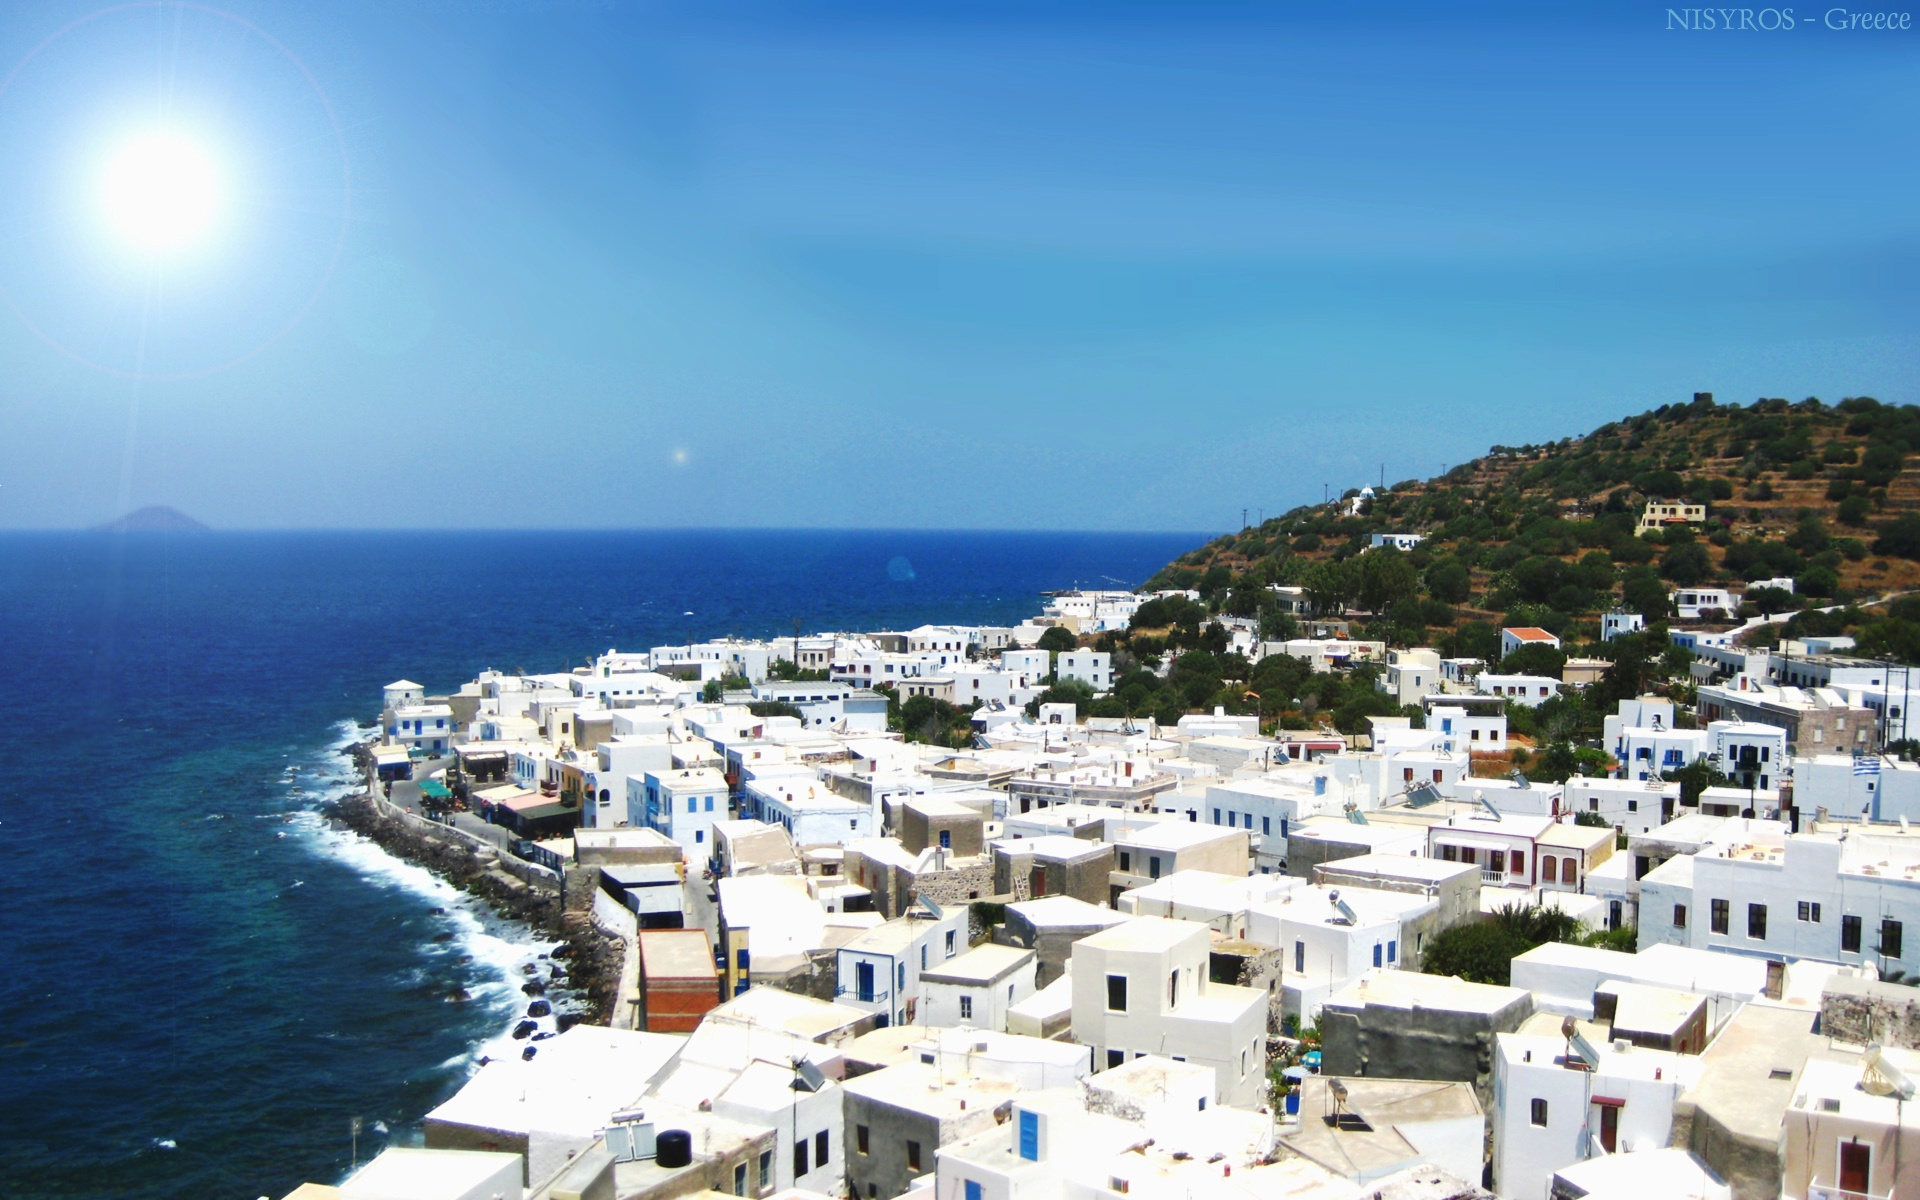 The Dodecanese island of Nysiros